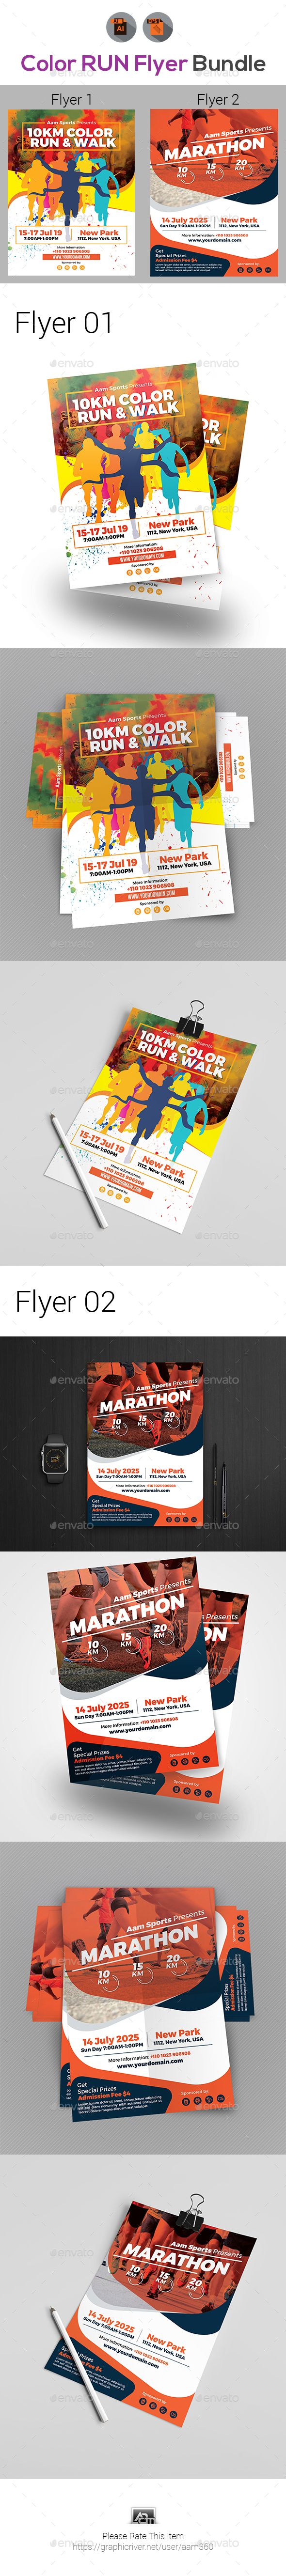 """INFORMATIONS FOR THIS BUNDLE:FEATURES: Flyer 01:Size 8.27""""x11.69""""Bleed: .25""""Fully editable Illustrator AI & EPS file Files Included : adobe illustrator CS5 Format (AI, EPS)Free Fonts Used Clean & Modern Design 300 DPI CMYK Help file includedFlyer 02:Size 8.5""""x11""""Bleed: .25""""Fully editable Illustrator"""